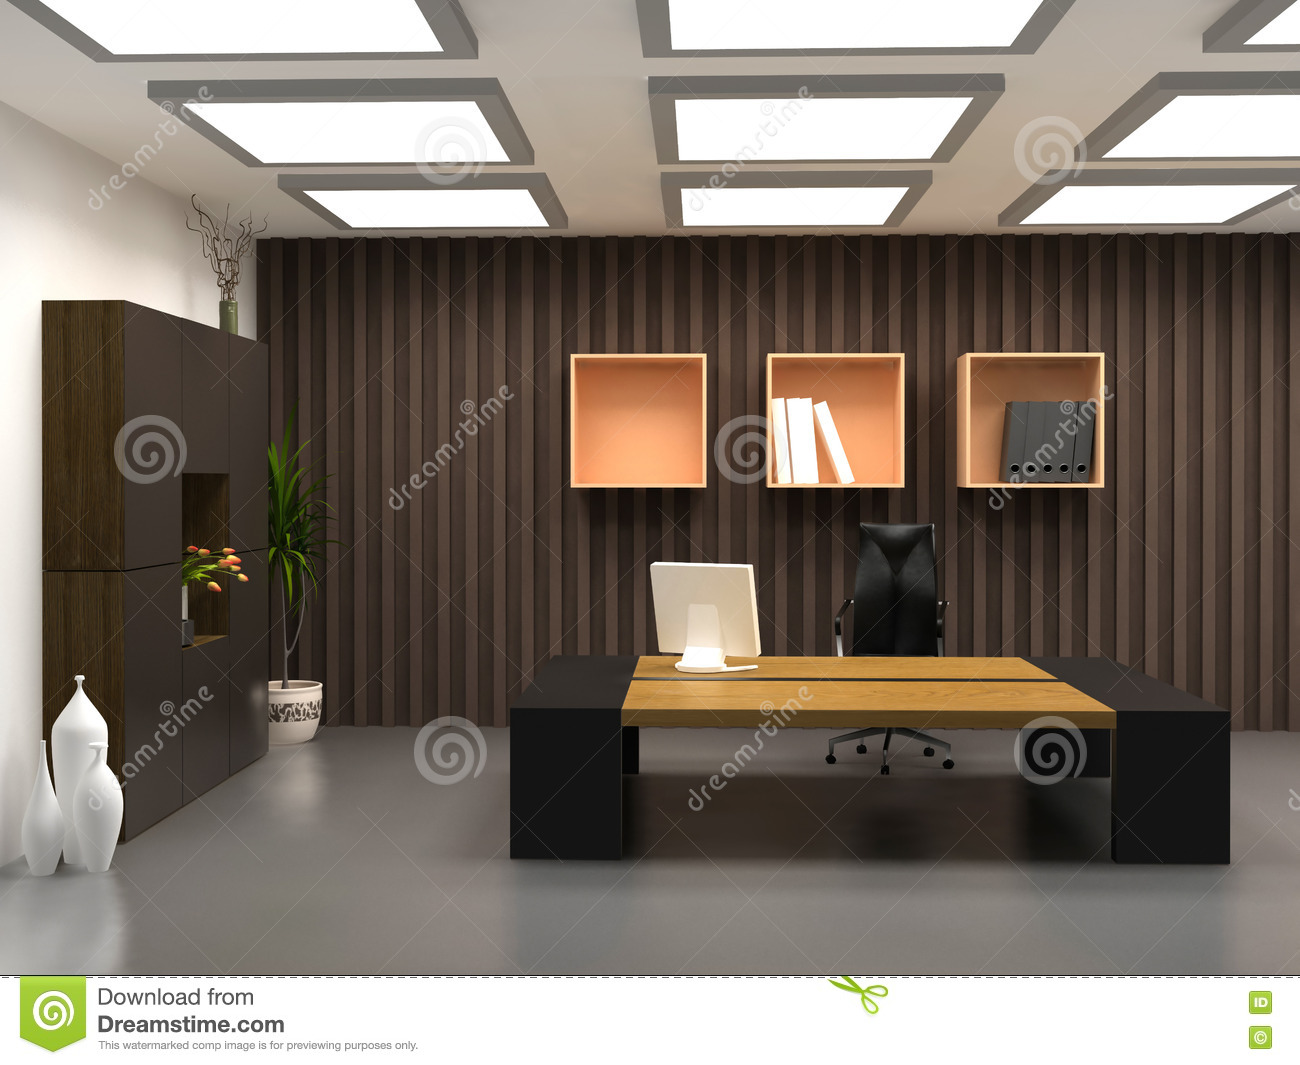 le bureau moderne image stock image du meubles travail 2263387. Black Bedroom Furniture Sets. Home Design Ideas